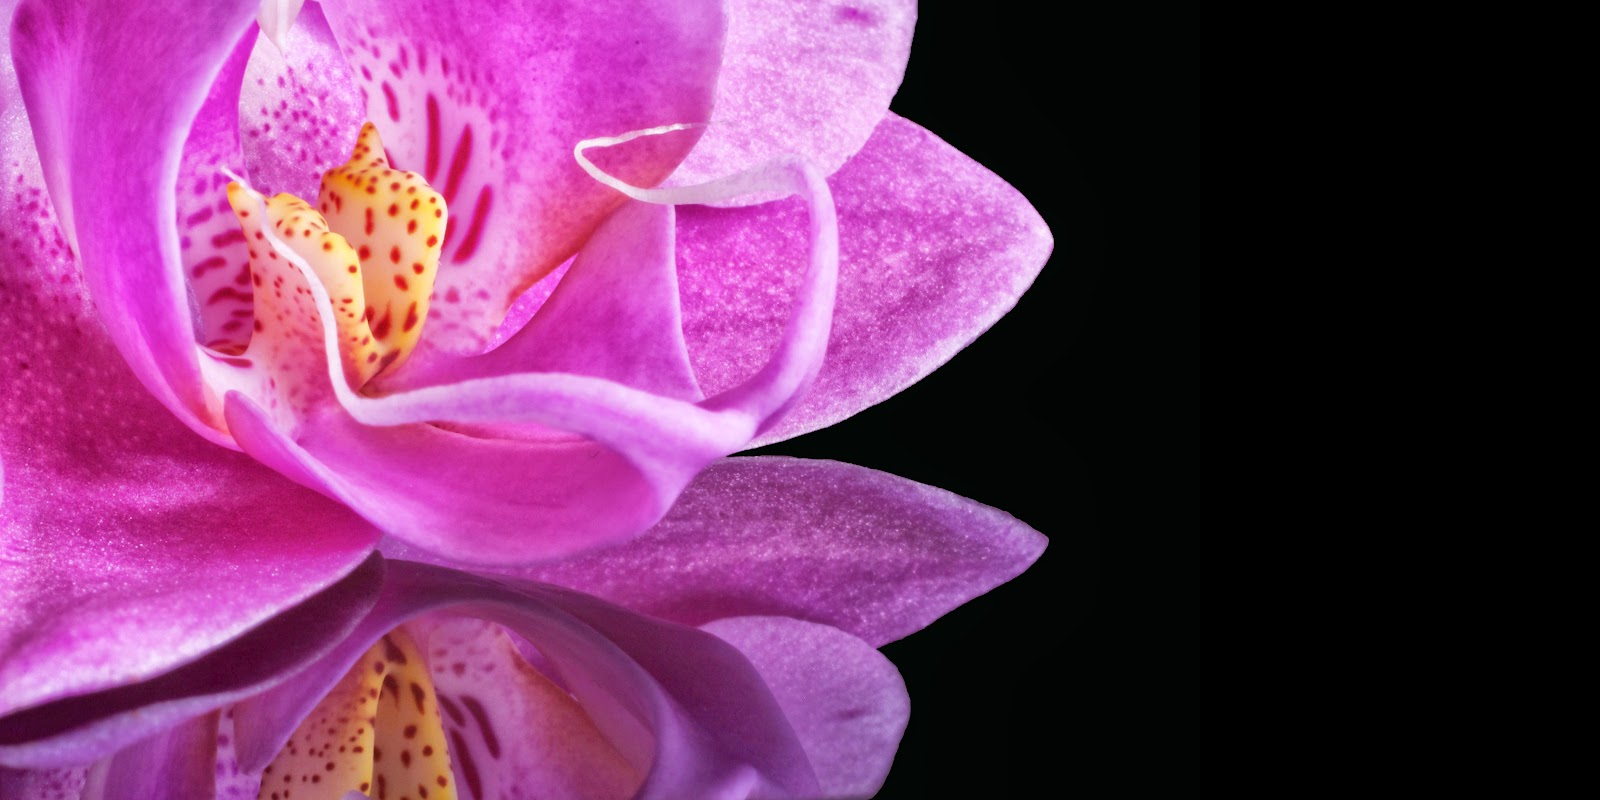 Orchid-flower-image-BG-wallpaper-for-edit-quotes-sayings-wishes-greetings-5696x2848.jpg